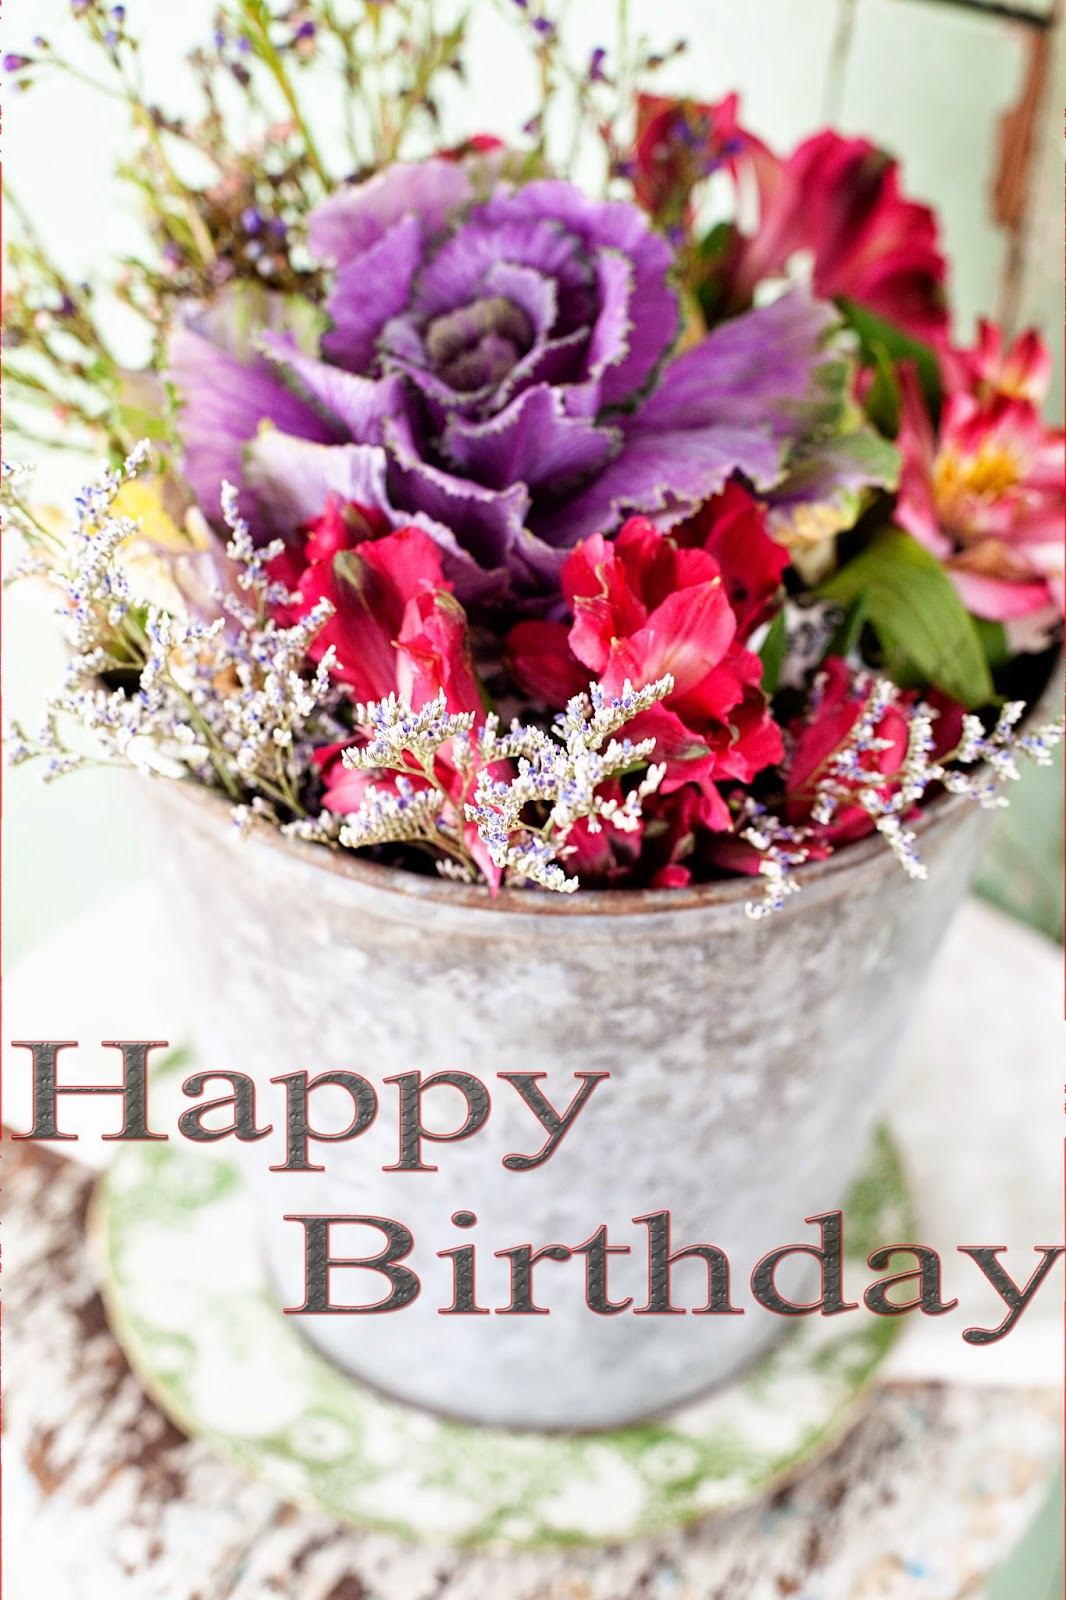 Birthday Wishes Images With Cake And Flowers : Happy birthday cake and flowers images ~ Greetings Wishes ...